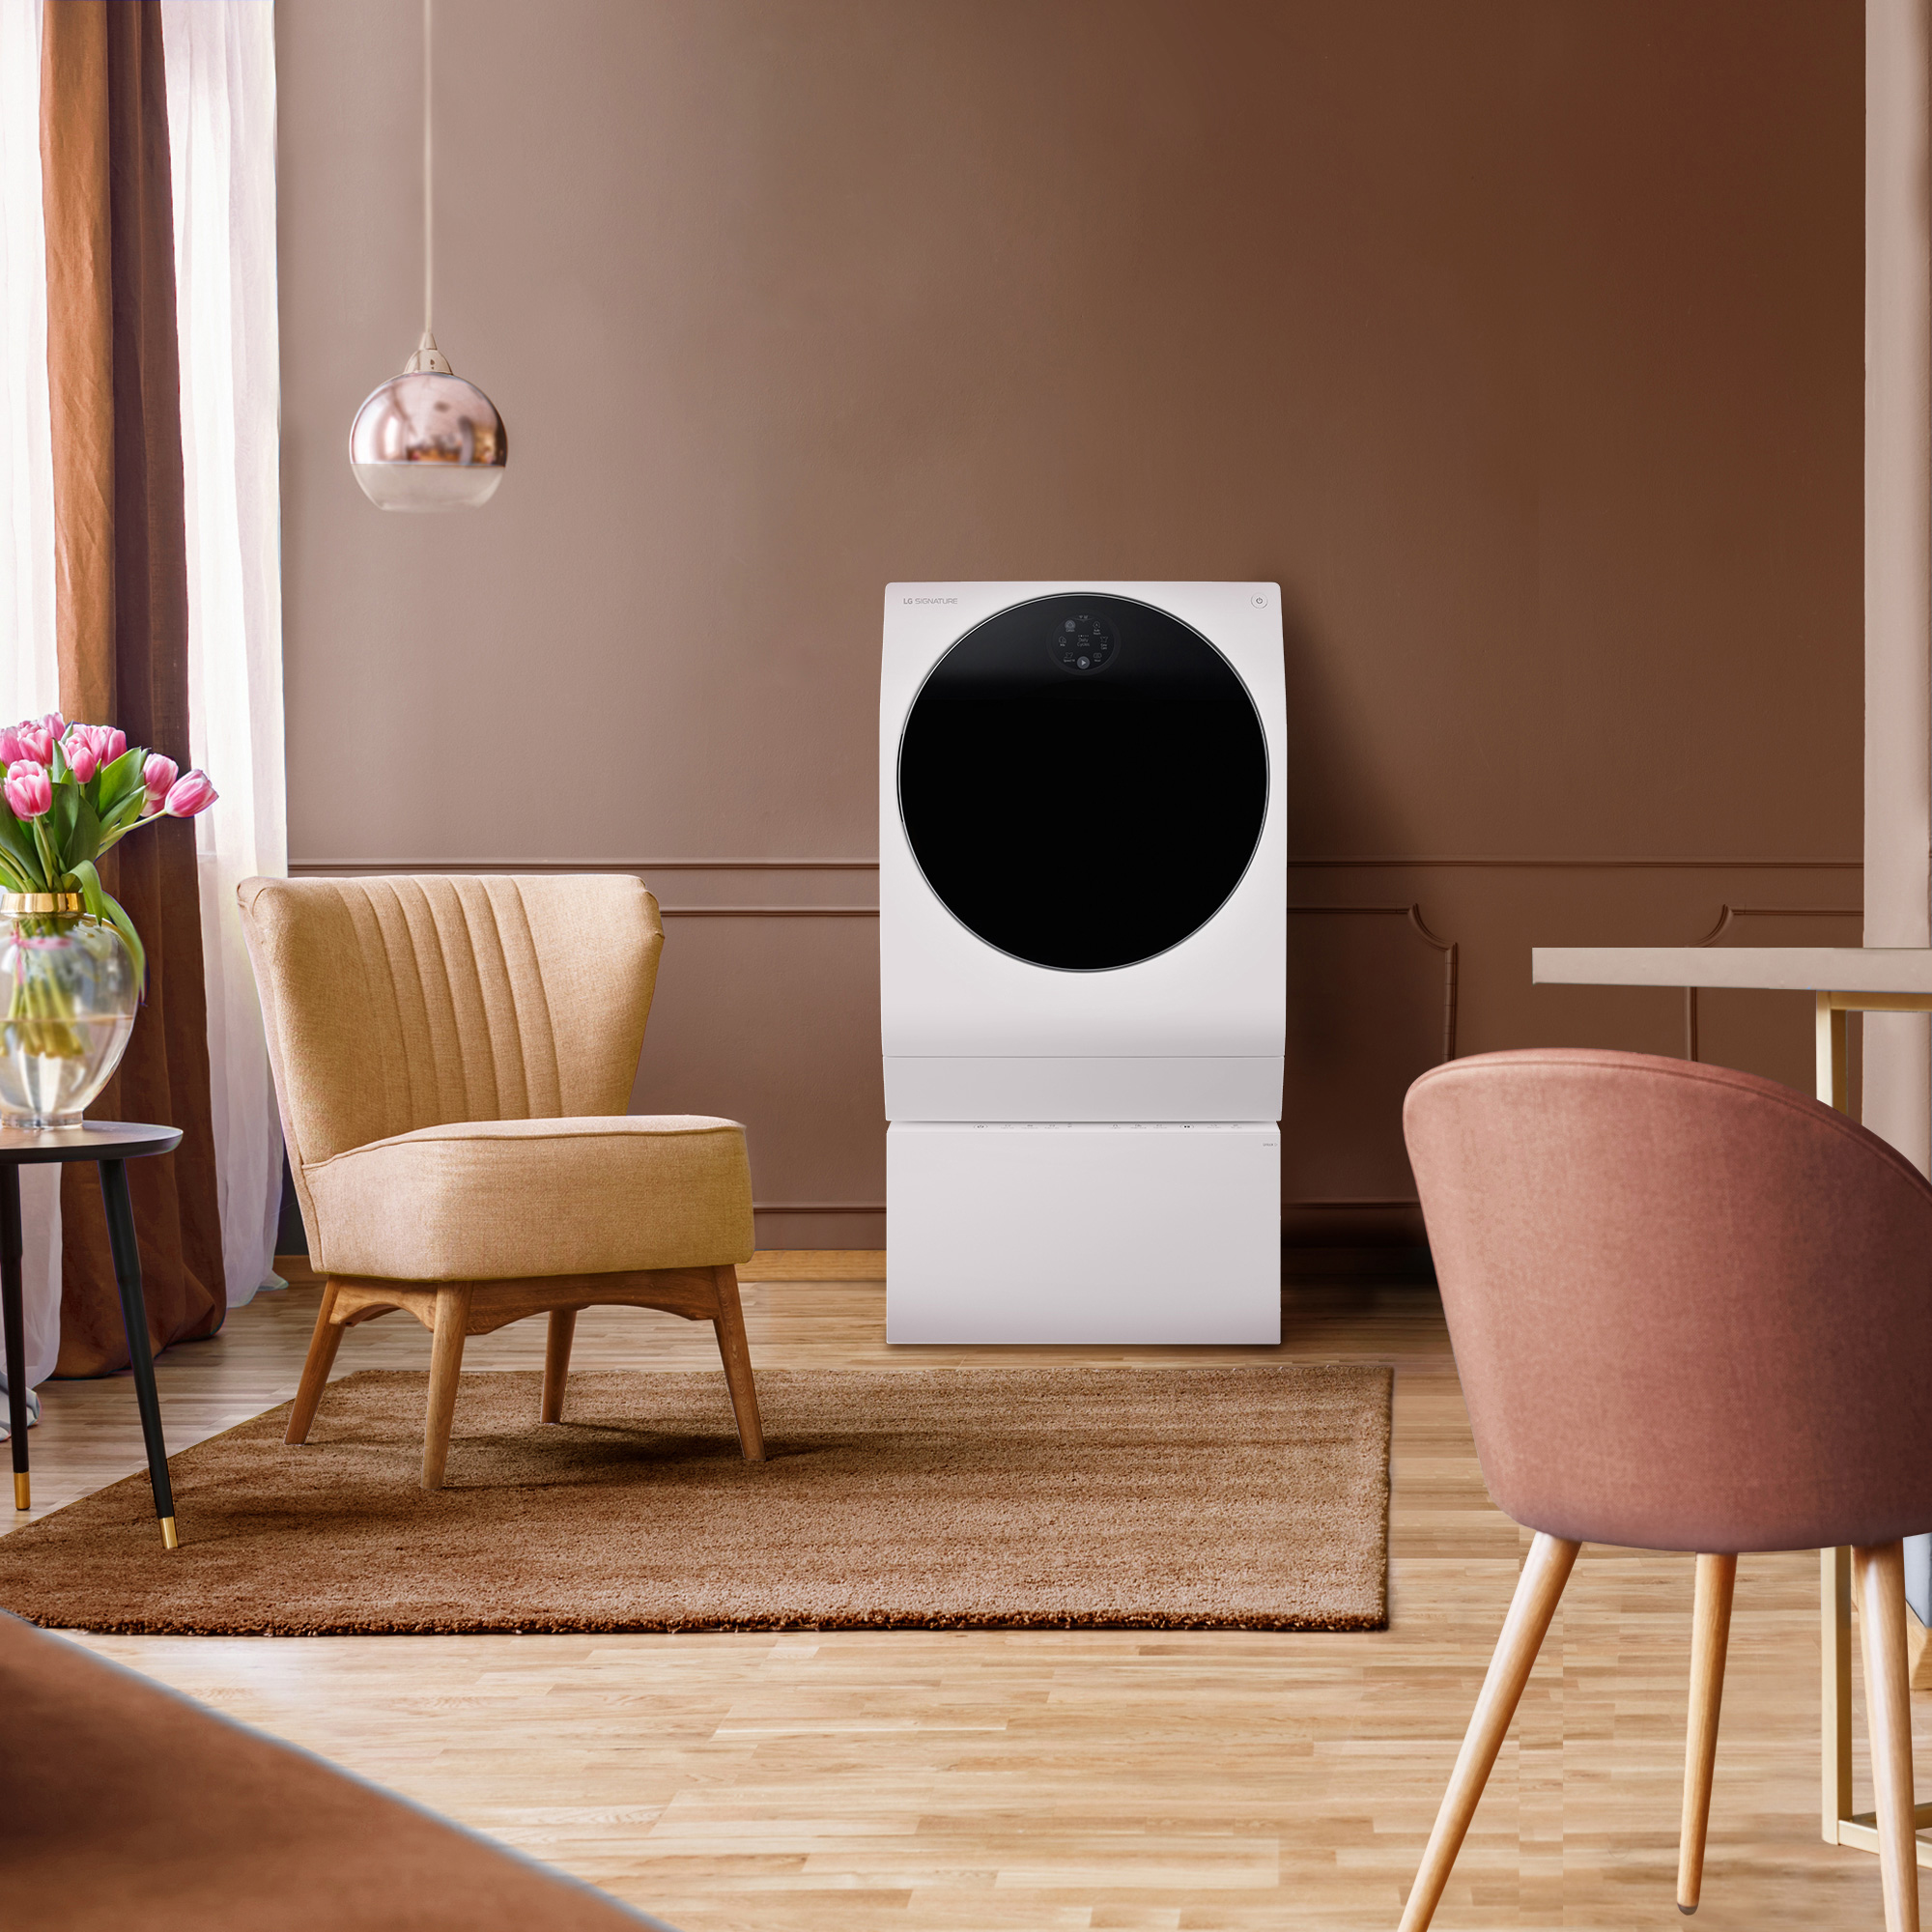 LG SIGNATURE Washing Machine with coral and clay elements